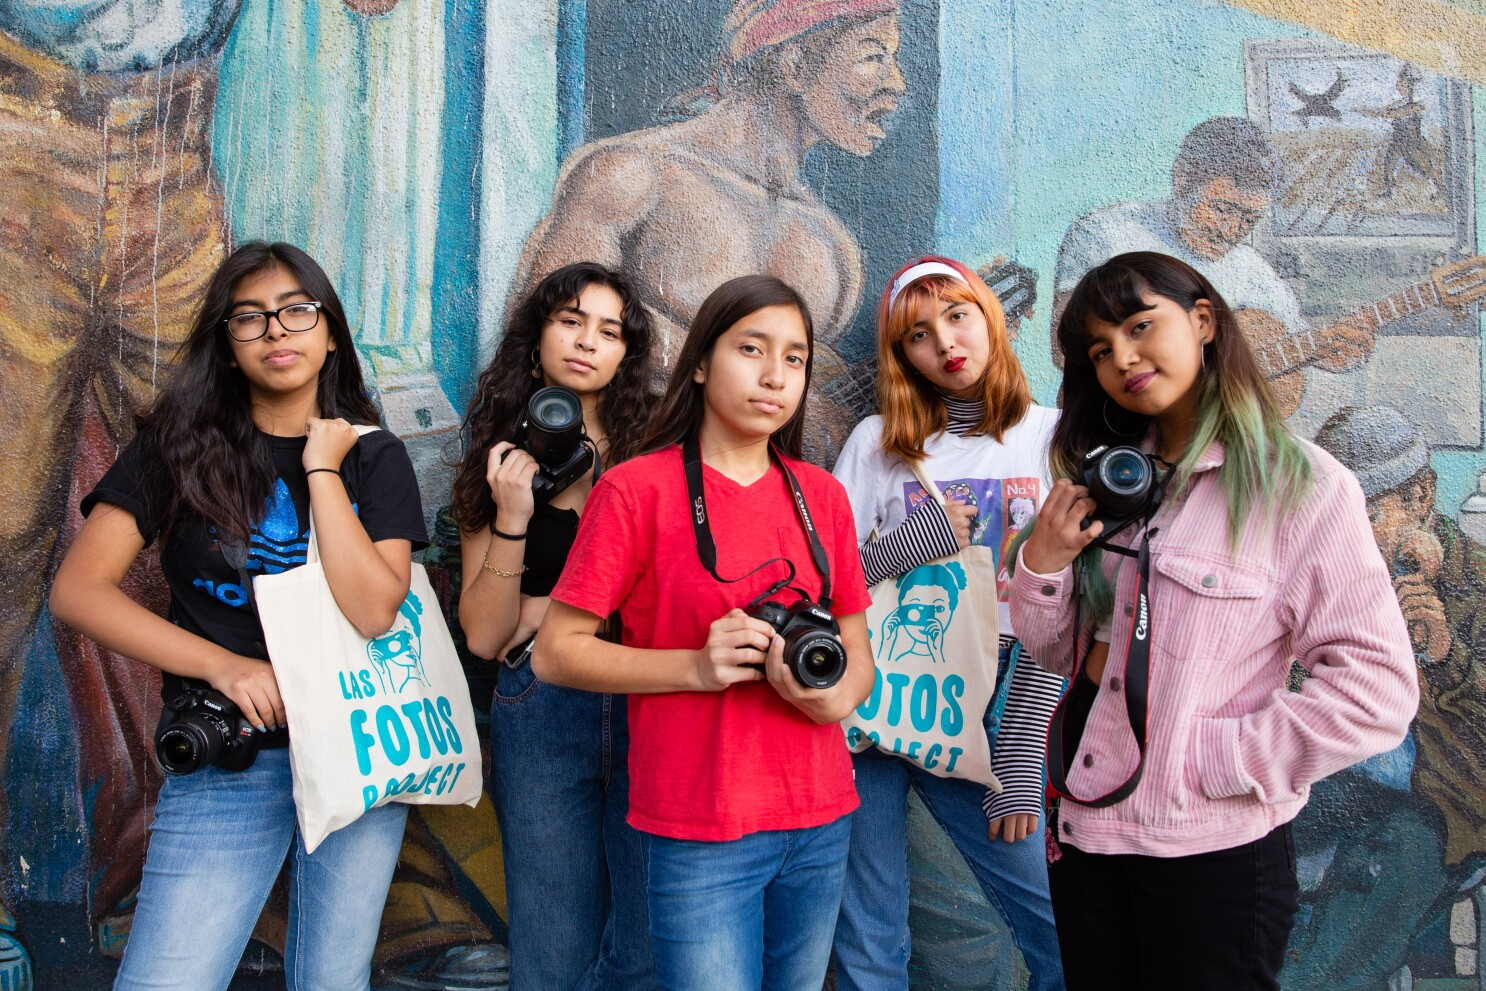 Las Fotos Project Helps Girls Document Their World Los Angeles Times